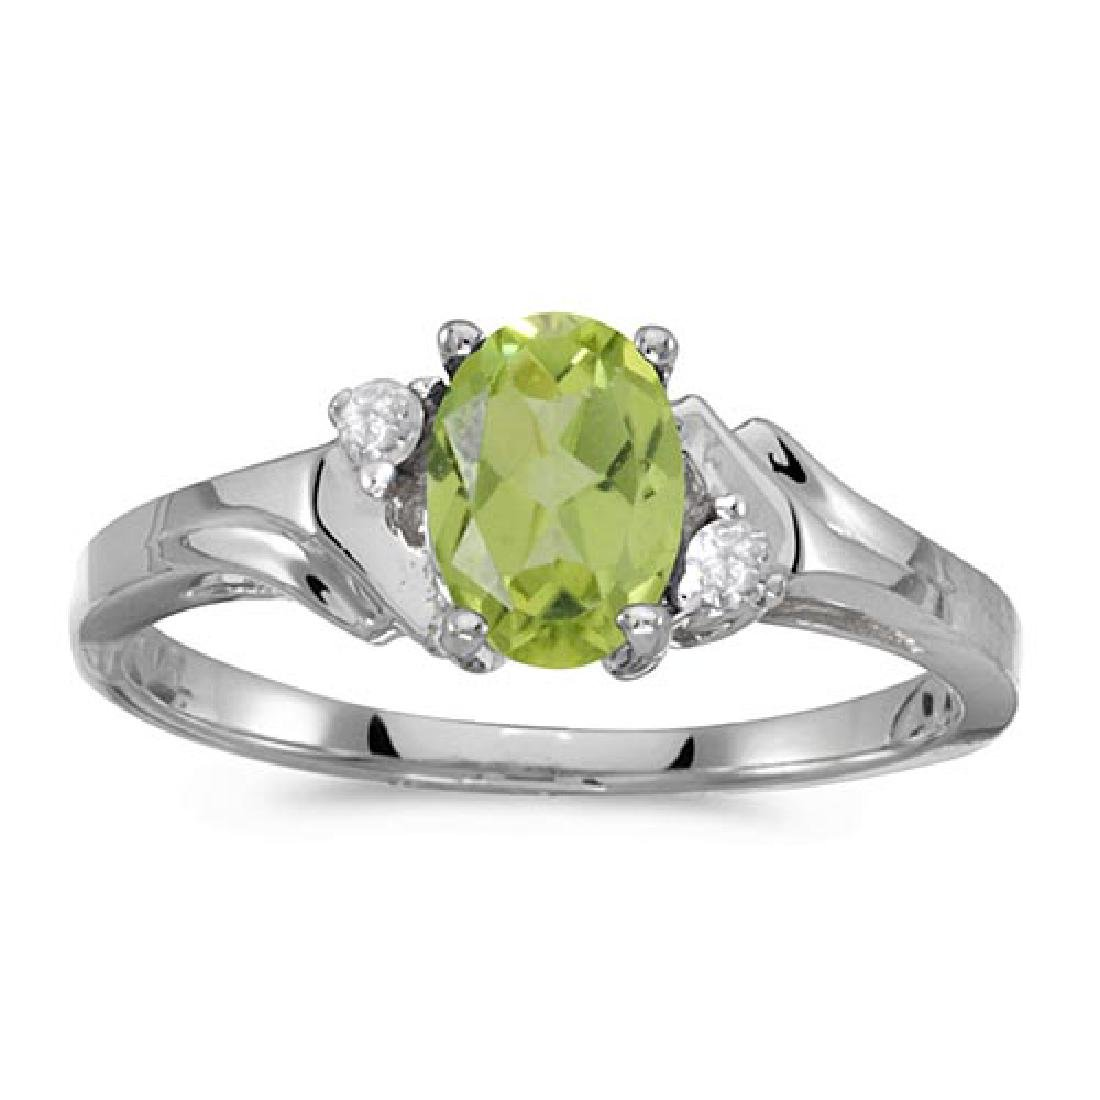 Certified 10k White Gold Oval Peridot And Diamond Ring